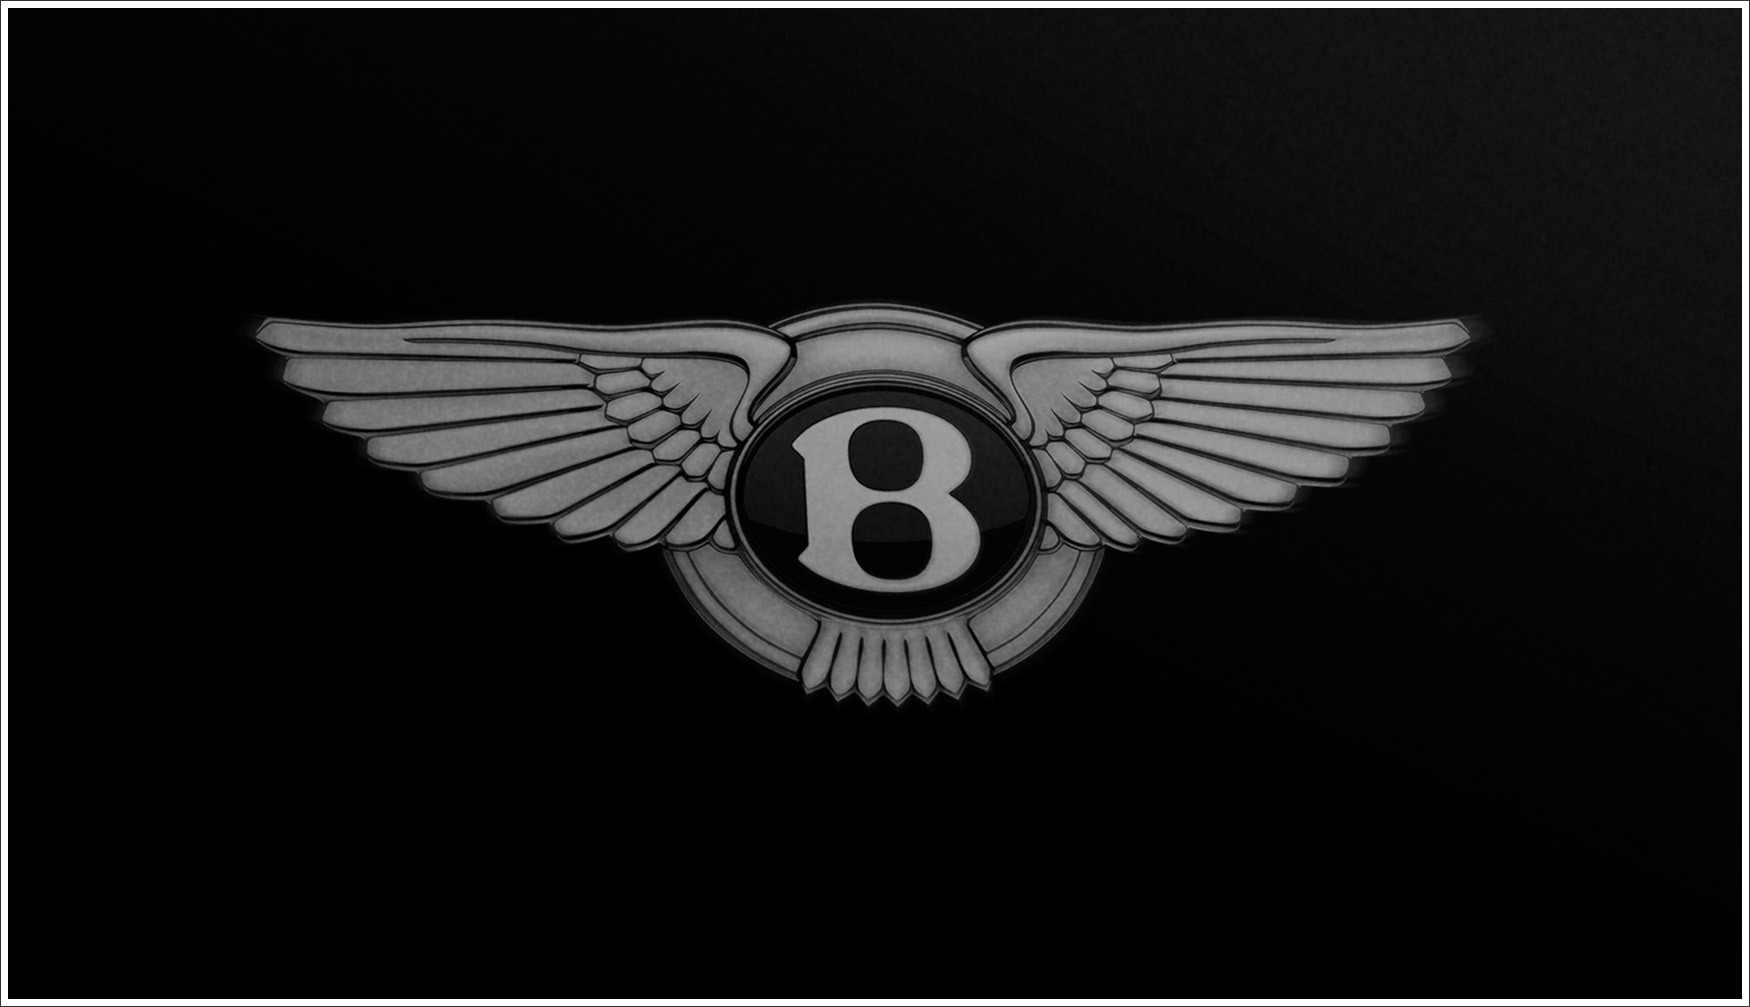 Bentley logo meaning and history latest models world cars brands